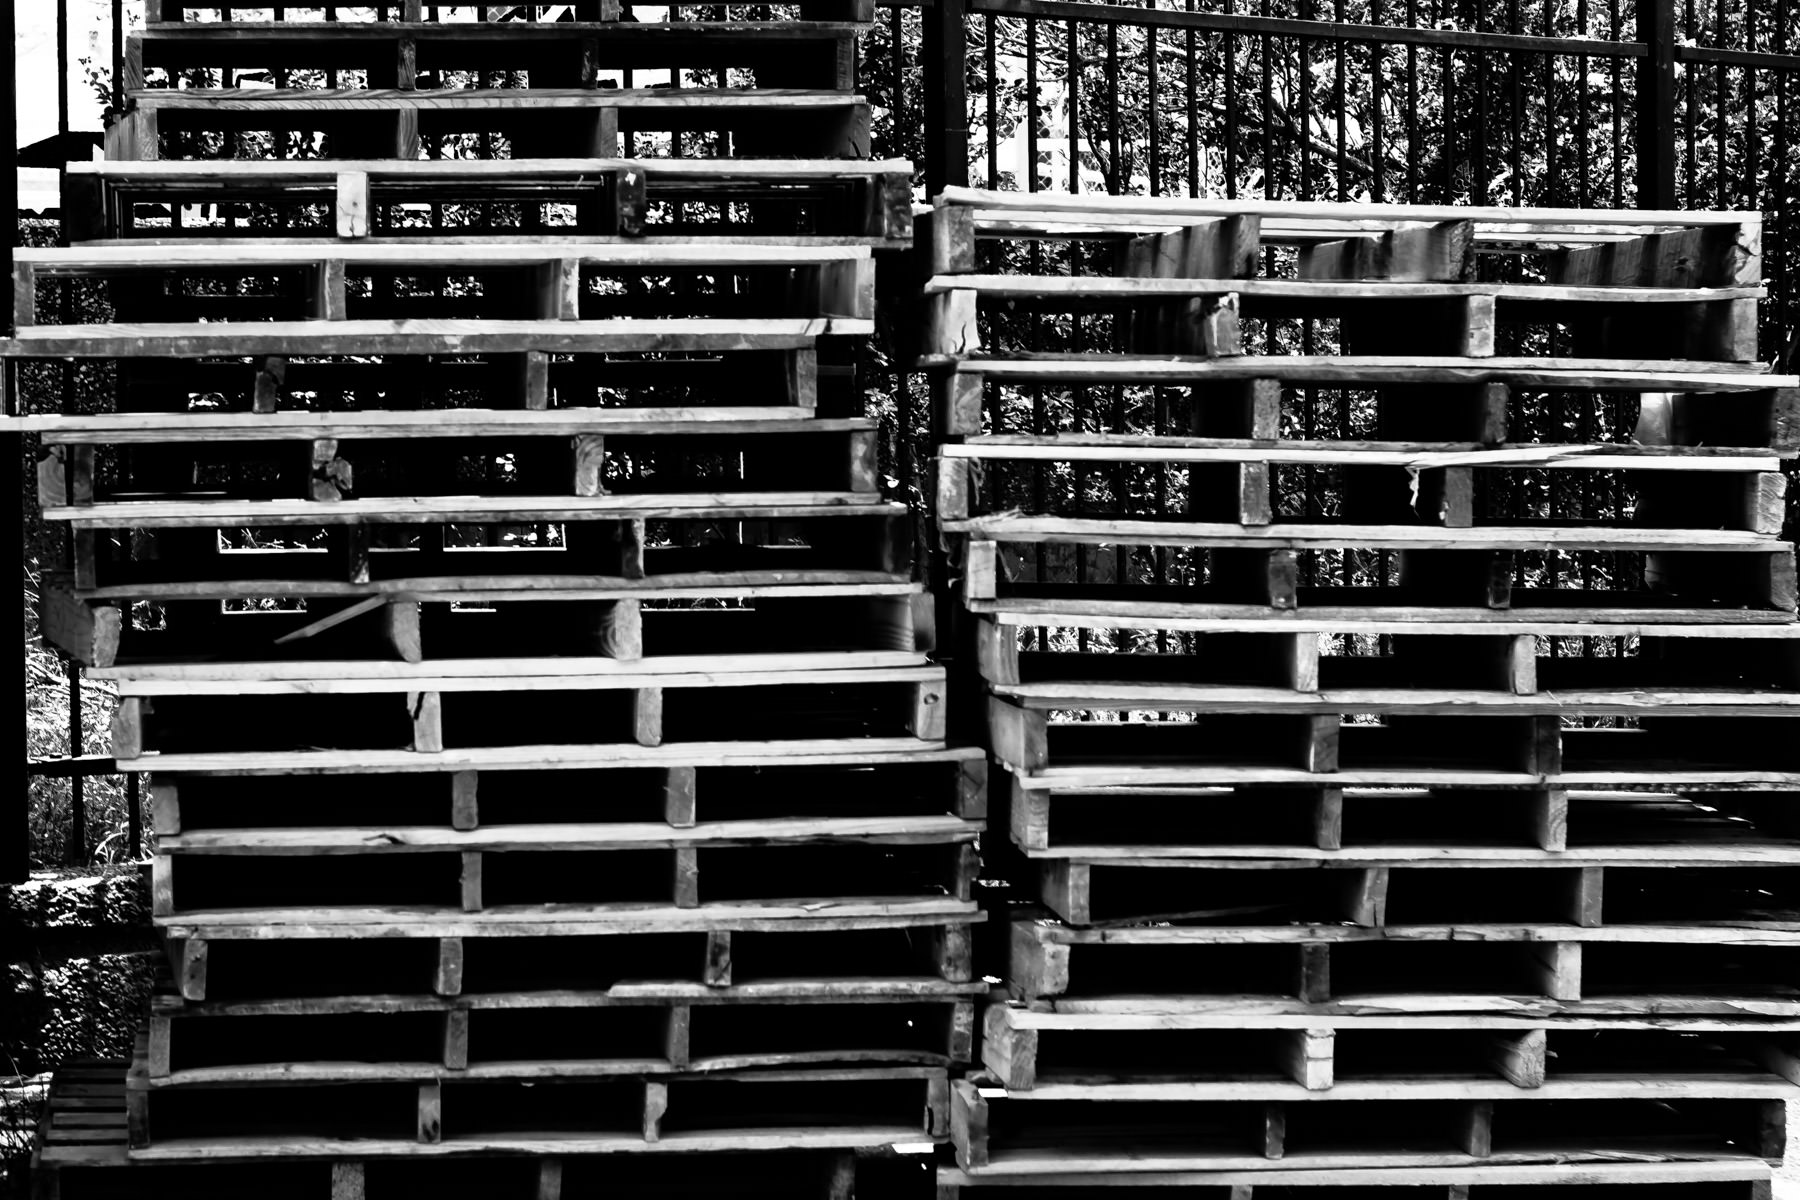 A stack of pallets in Fair Park, Dallas, Texas.